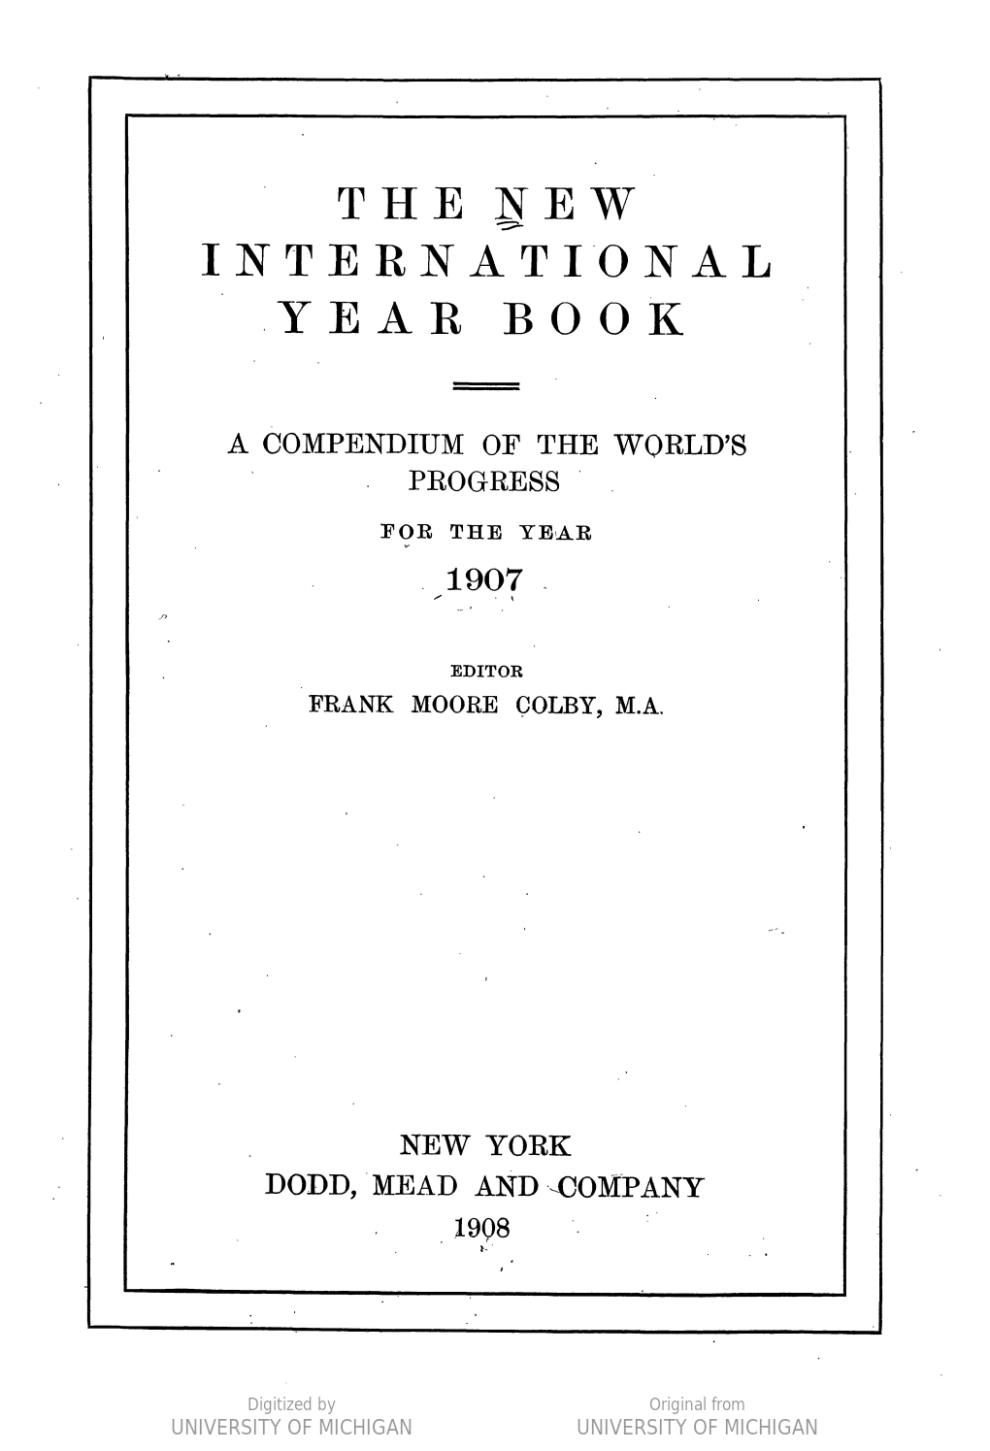 The New International Year Book: A Compendium of the World's Progress from the Year 1907 edited by Frank Moore Colby, M.A., Dodd, Mead and Company, New York, 1908